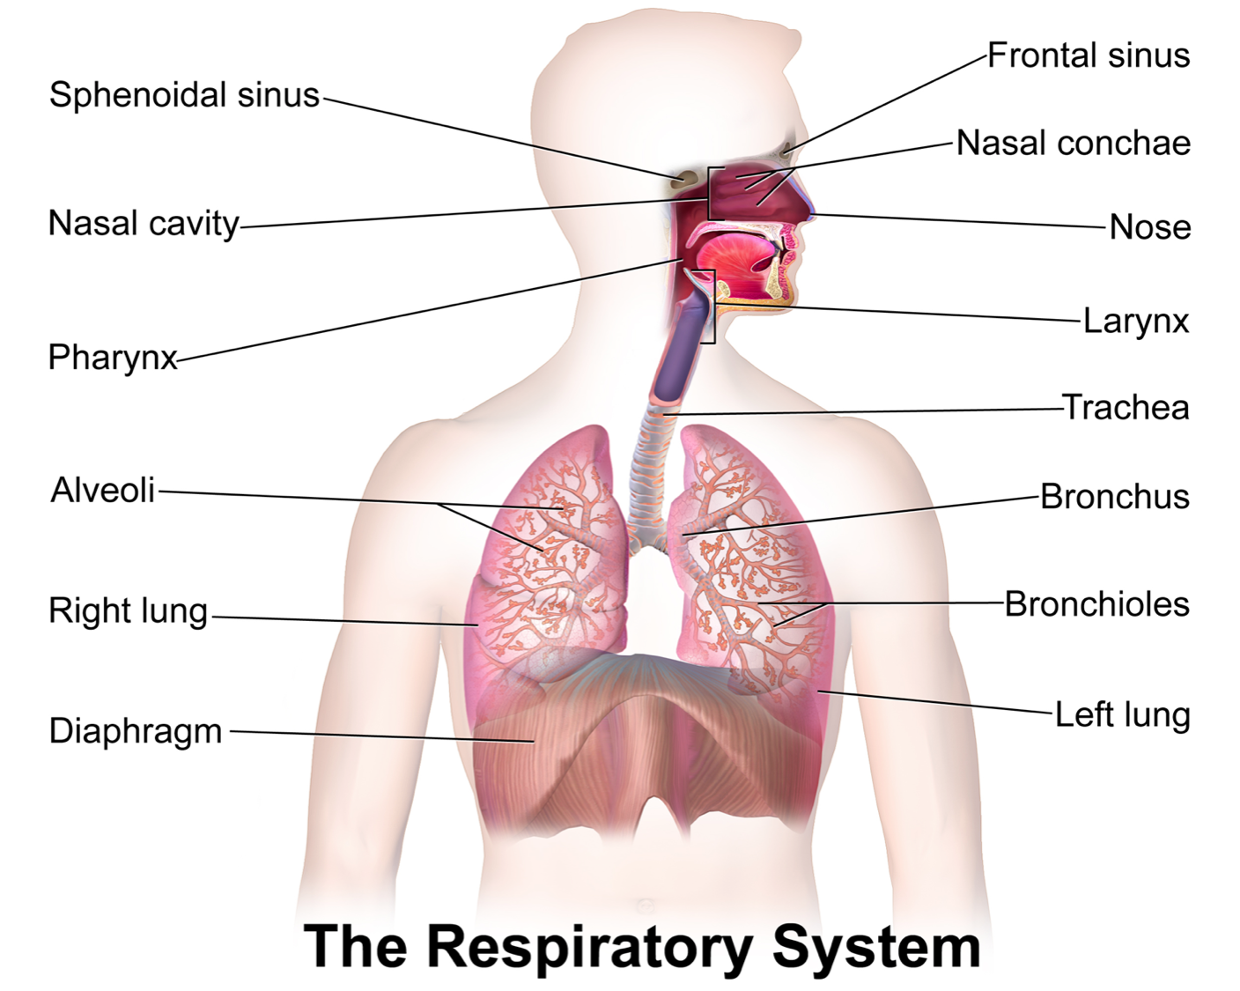 asthma disease of the respiratory system The national heart, lung and blood institute lists inflammation and narrowing of the airways in the lungs as asthma's primary effects on the respiratory system the airways in people with.